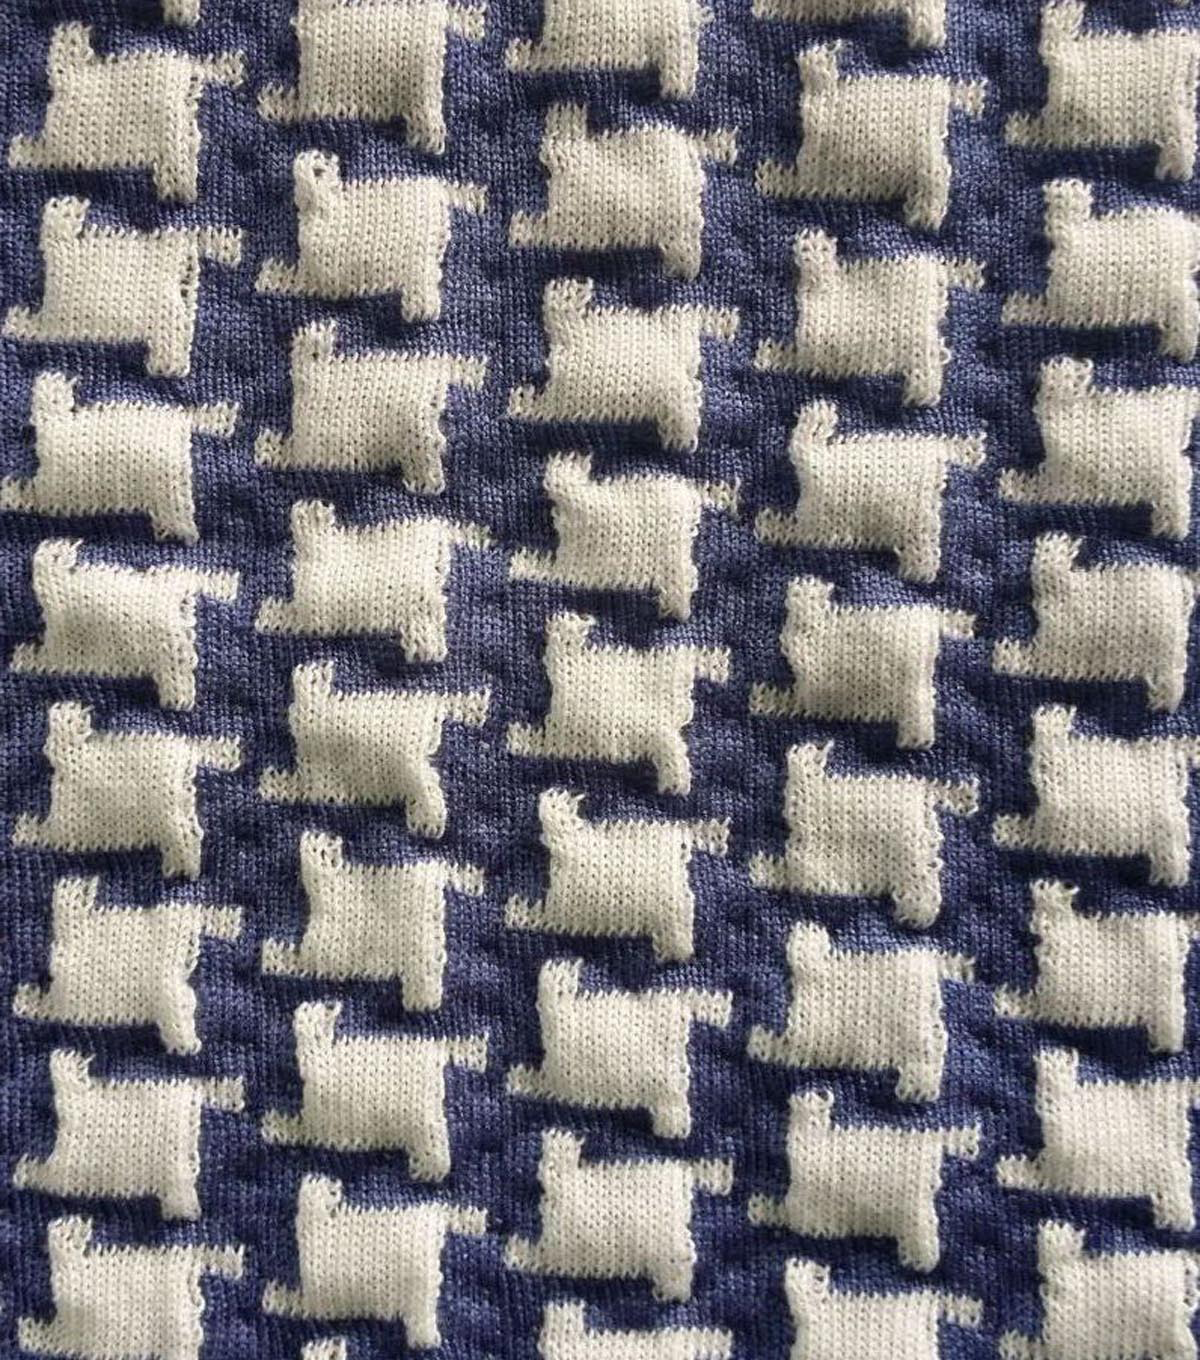 Doodles Majestic Knit Fabric- Houndstooth Blue White | JOANN